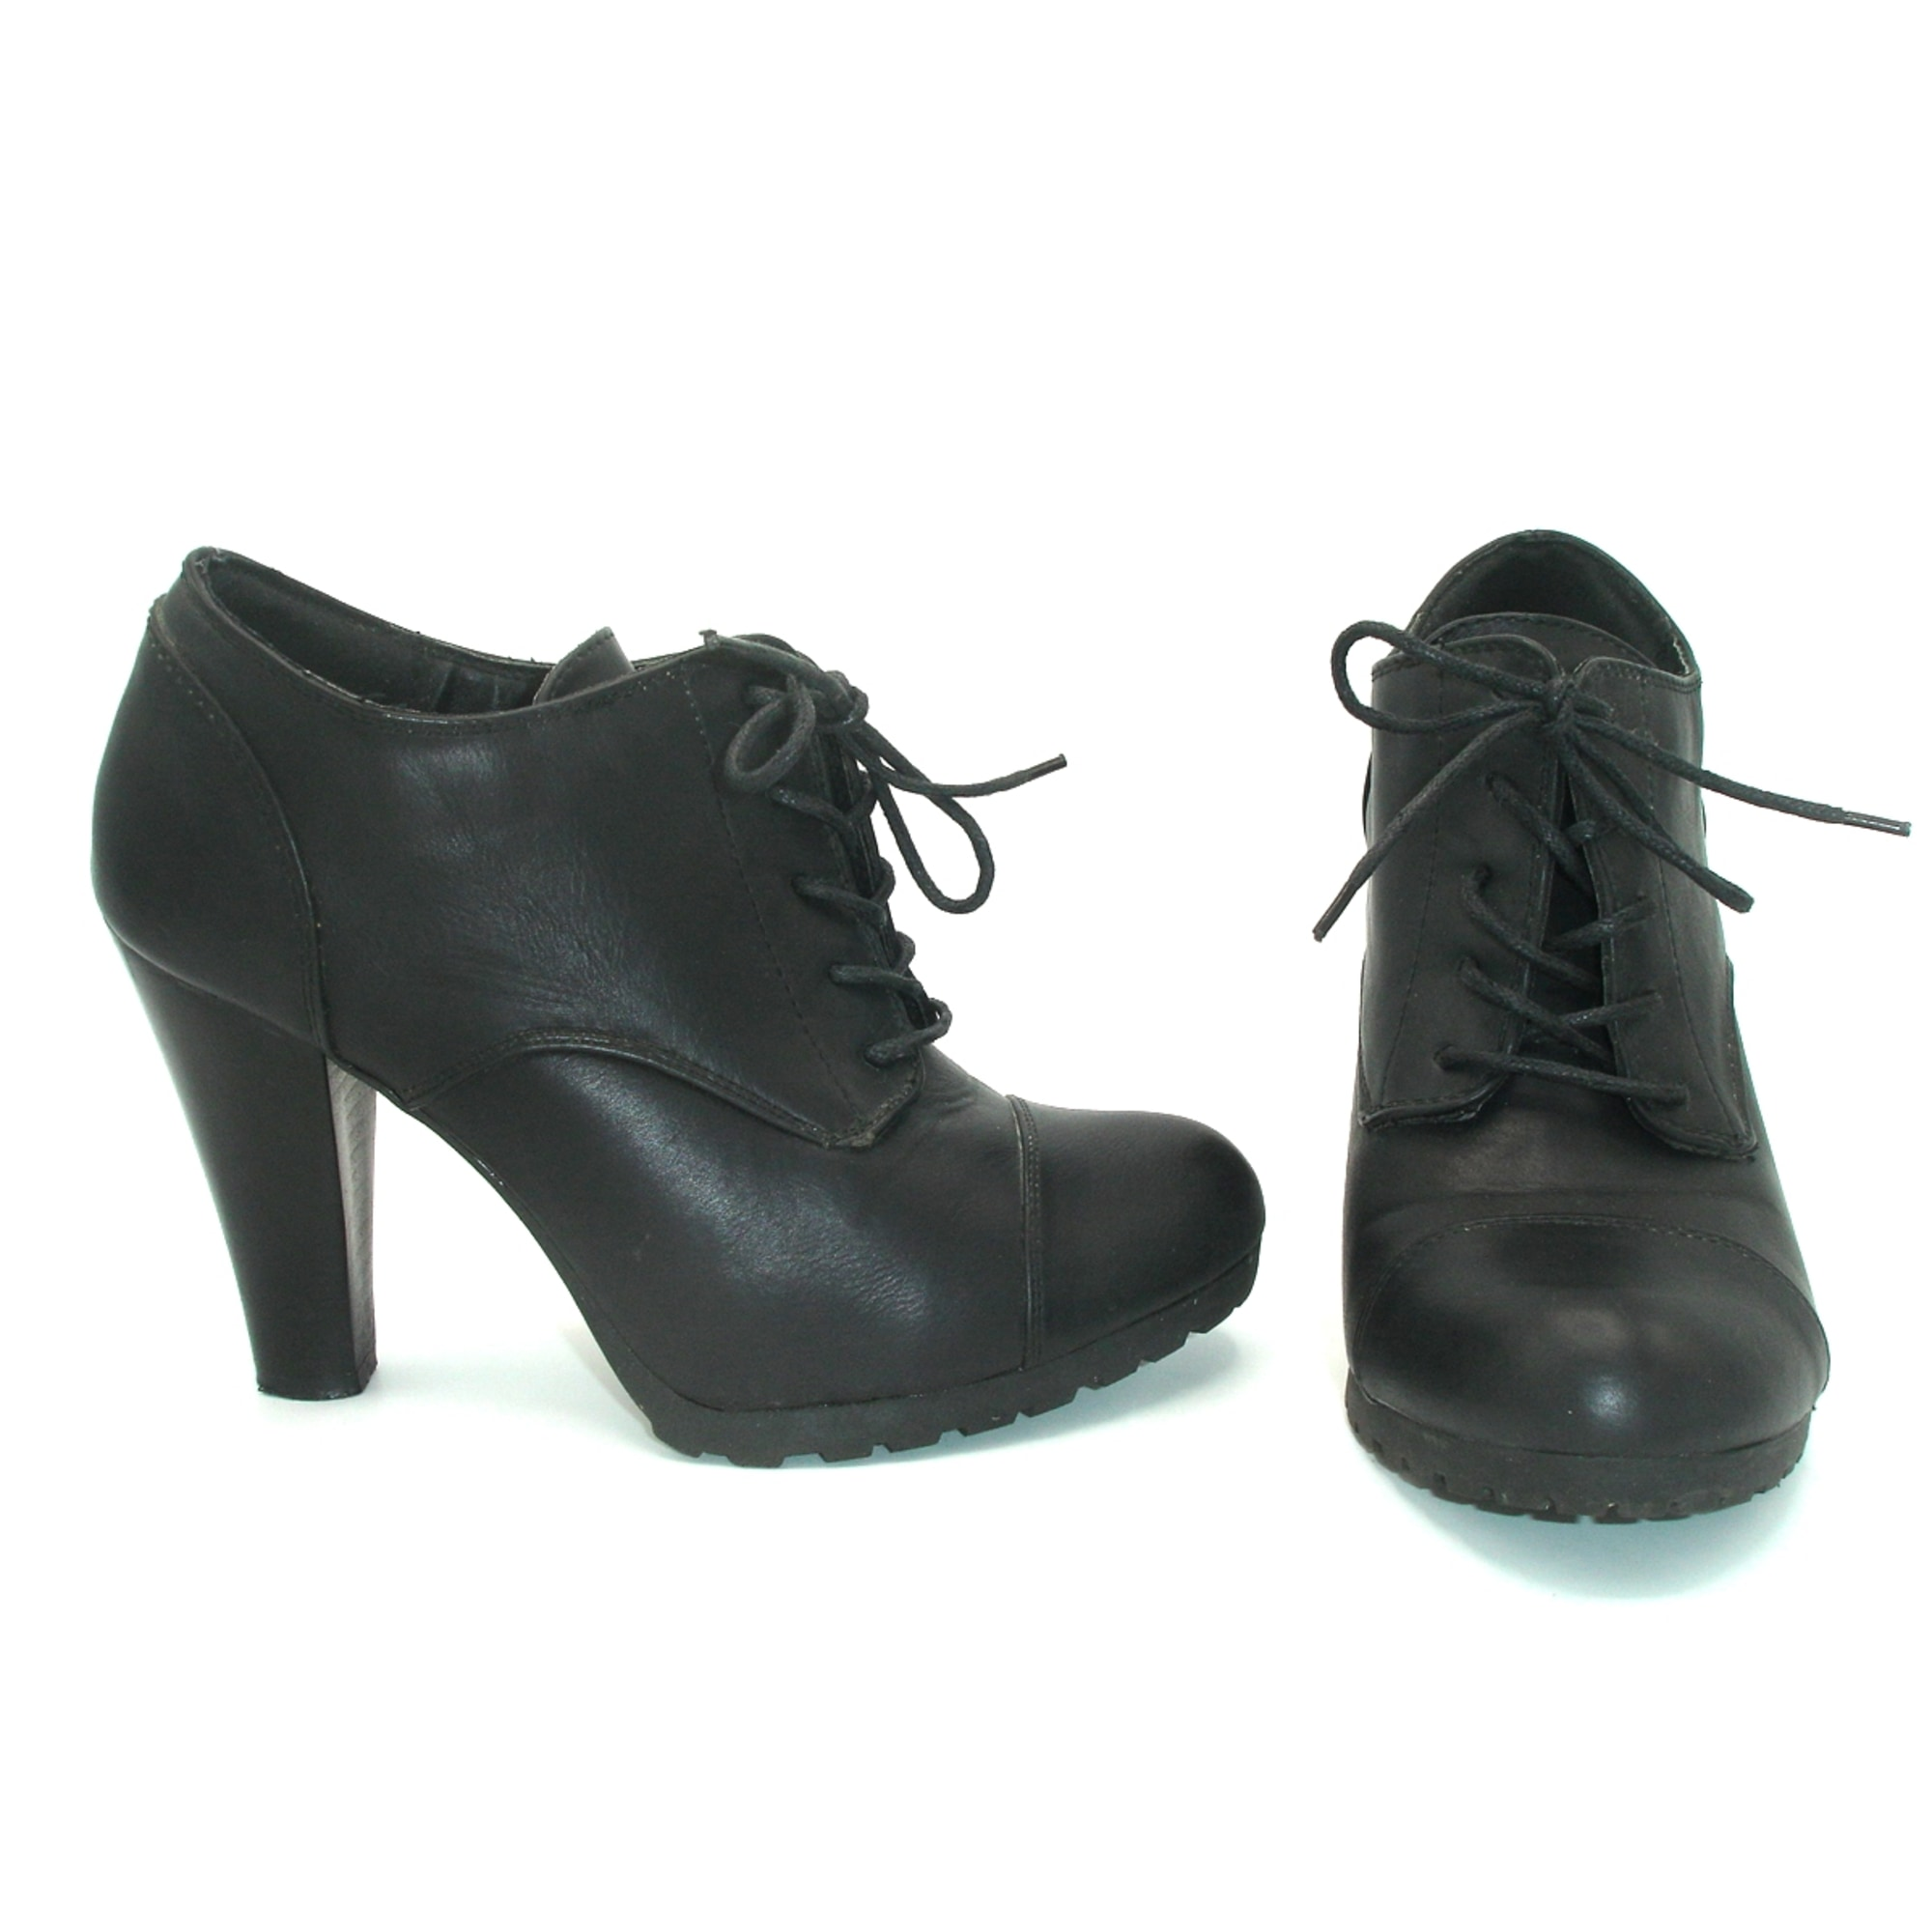 55989ed32d Bottines & low boots à talons CLOSER BY CHAUSSEA 37,5 noir - 5896450